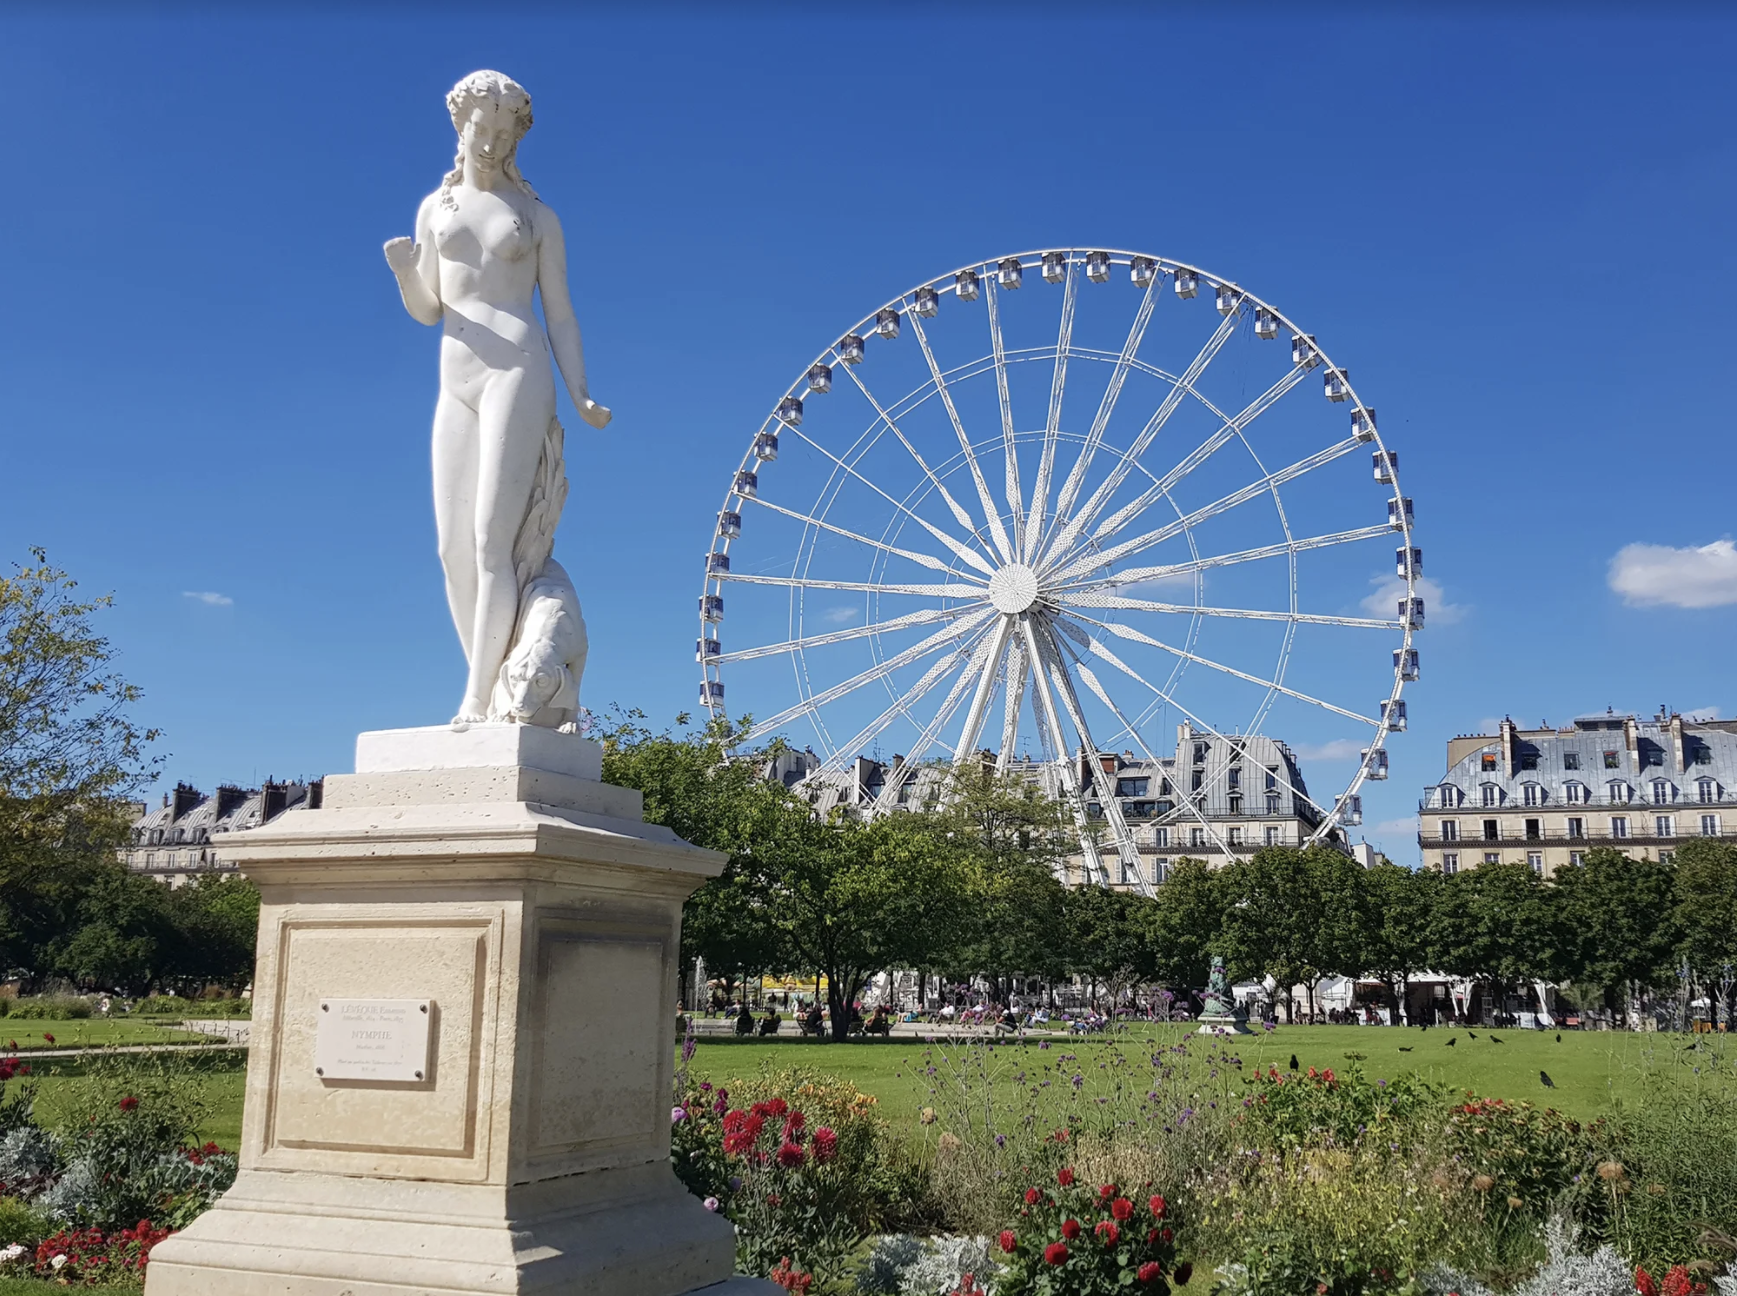 Statue in Tuileries garden with a big wheel in the background